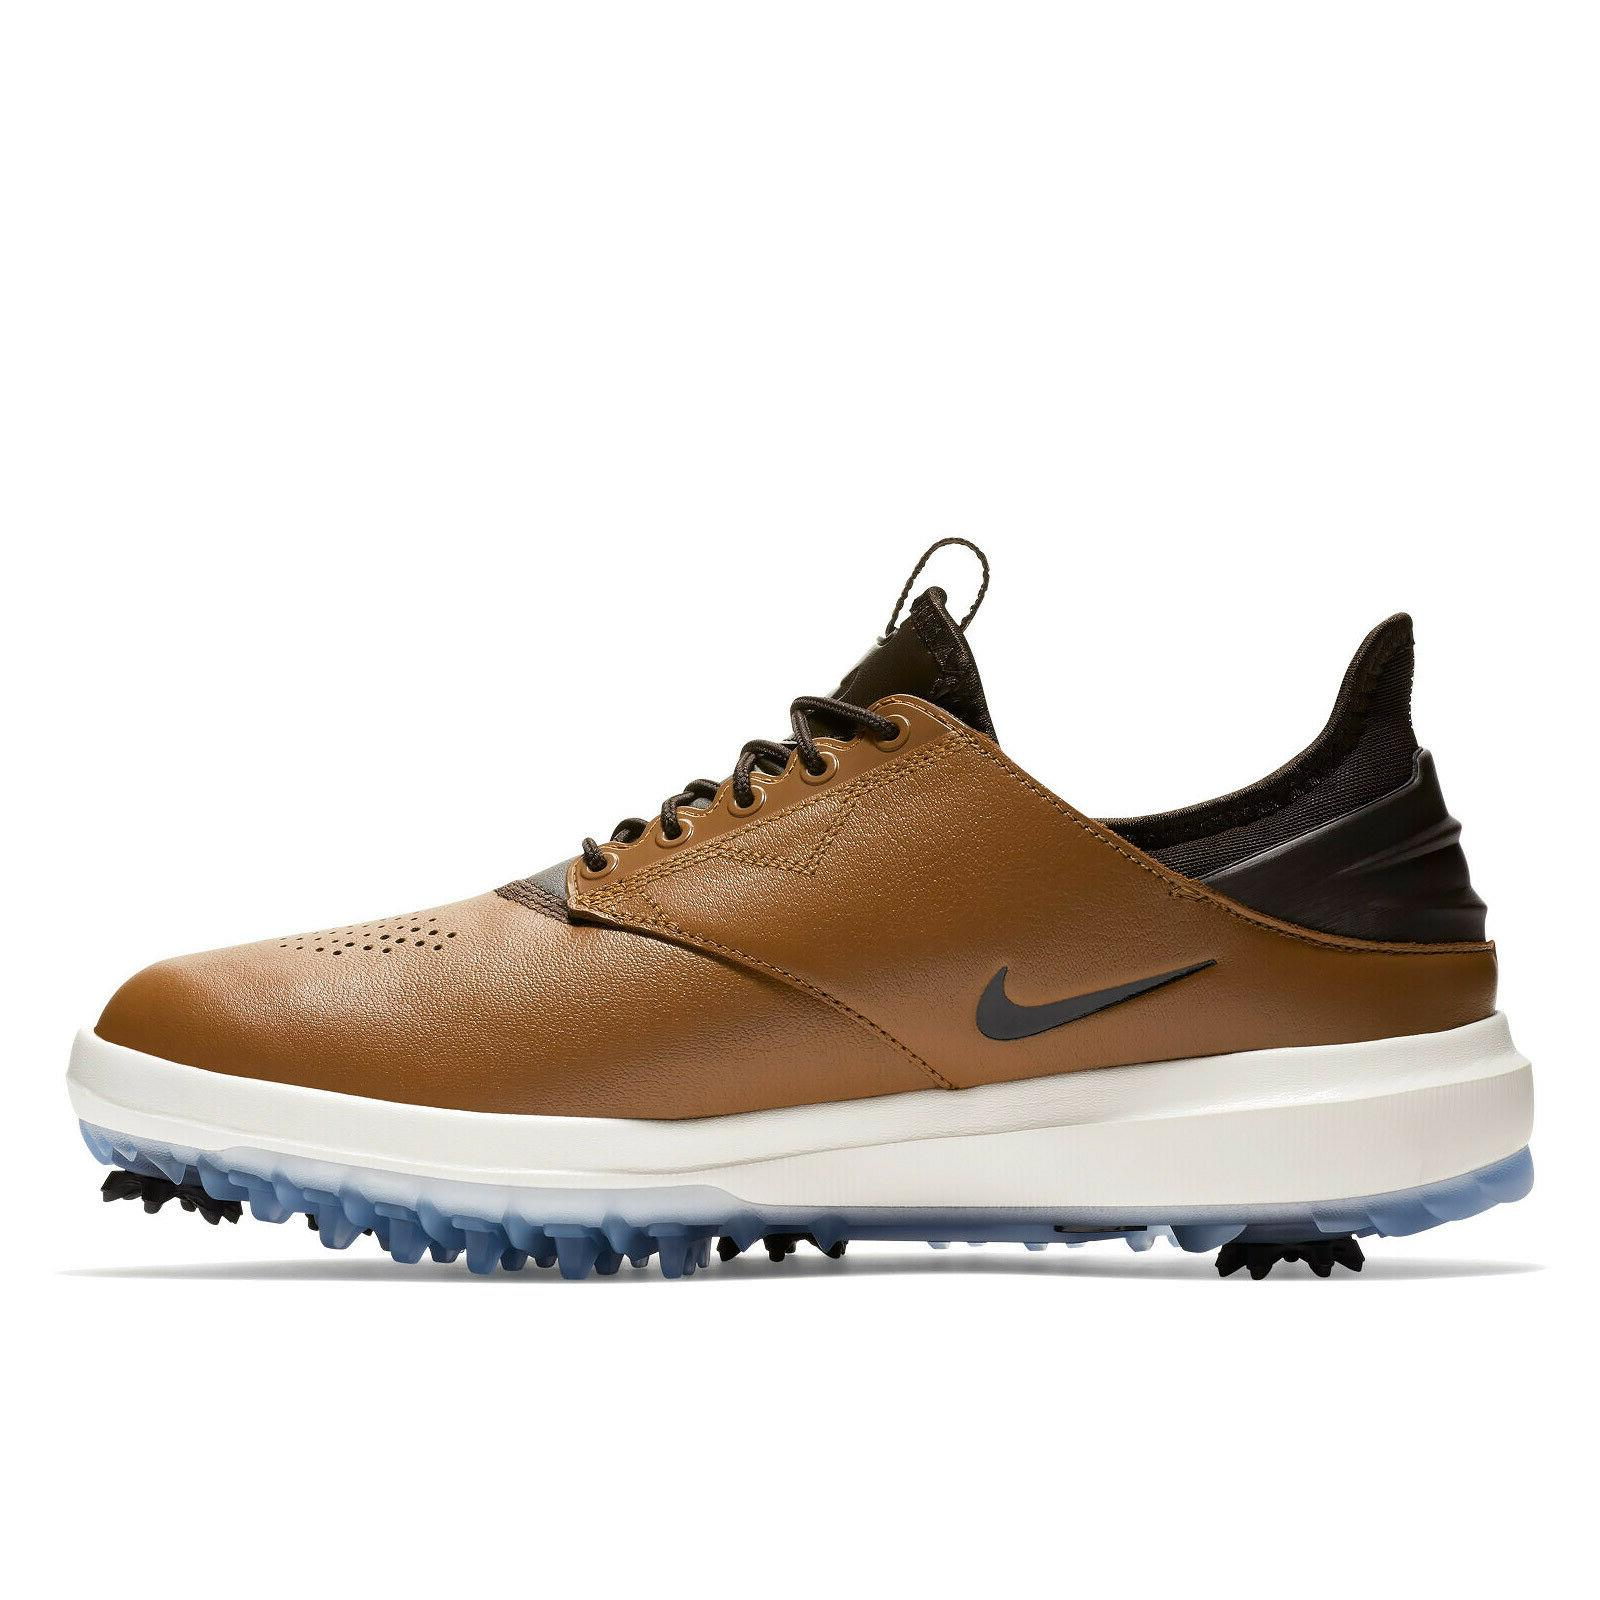 New NIKE Air Zoom Direct Shoes Spikes - Brown